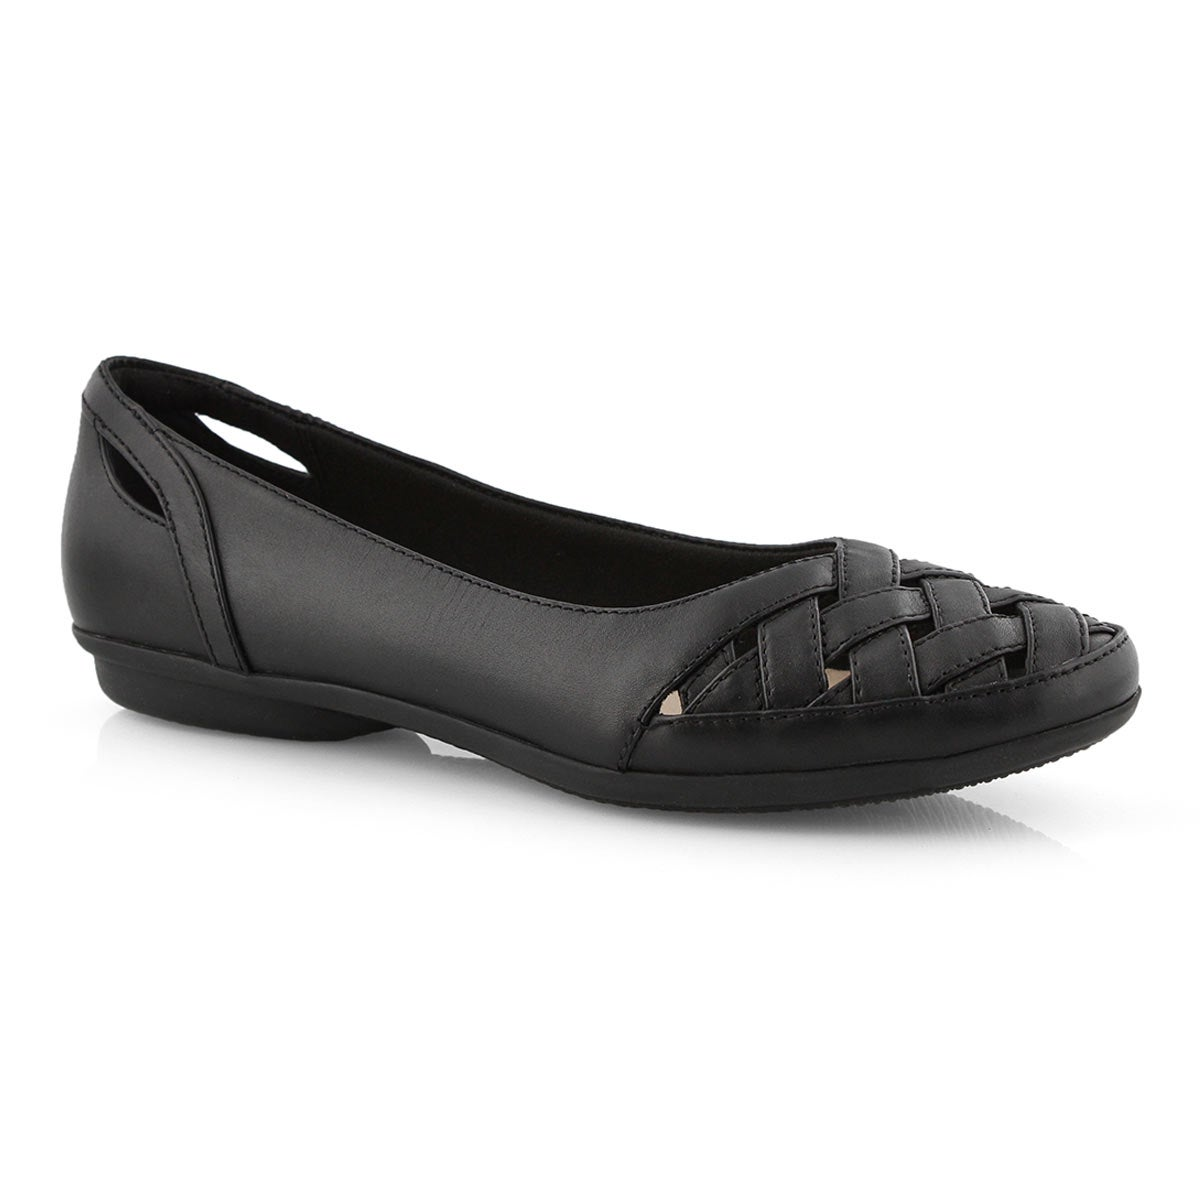 Lds Gracelin Maze black leather flat